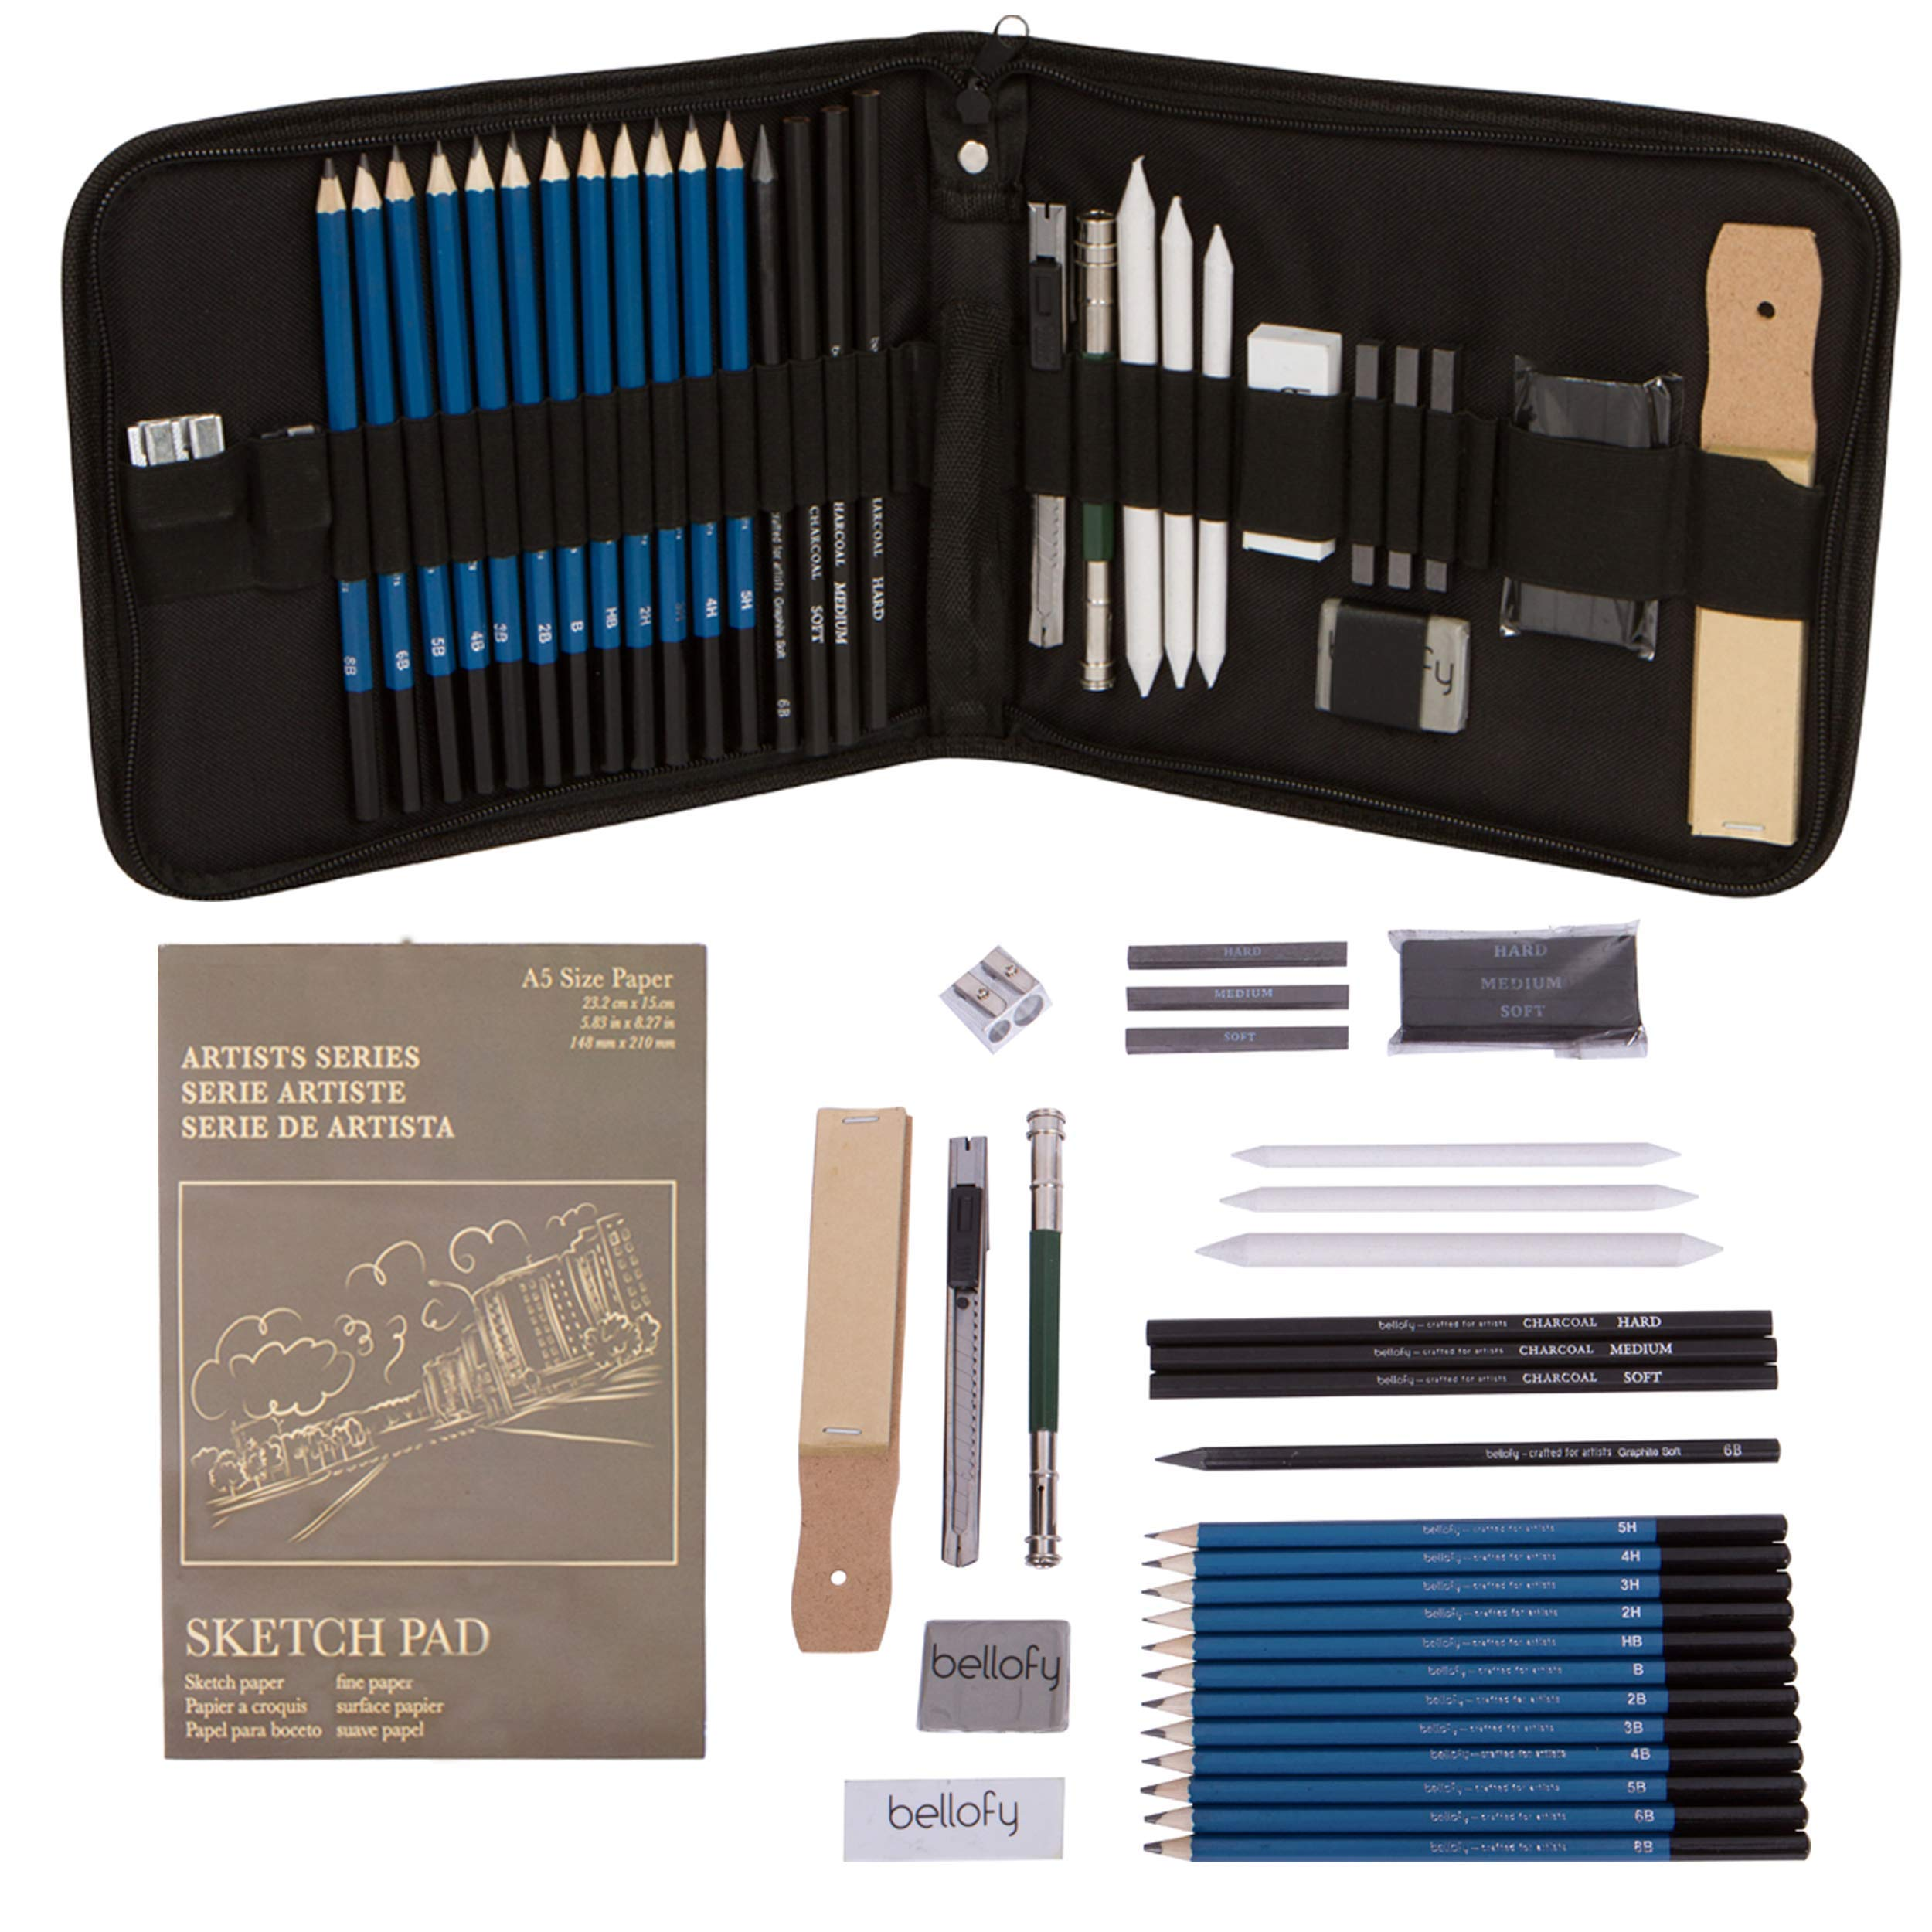 Bellofy Professional Drawing Kit Artist Drawing Supplies Kit | 33-Piece Sketch Kit, Erasers, Kit Bag, Free Sketchpad | Perfect Graphite Drawing Pencil Set for Sketching | Art Pencils for Shading by Bellofy